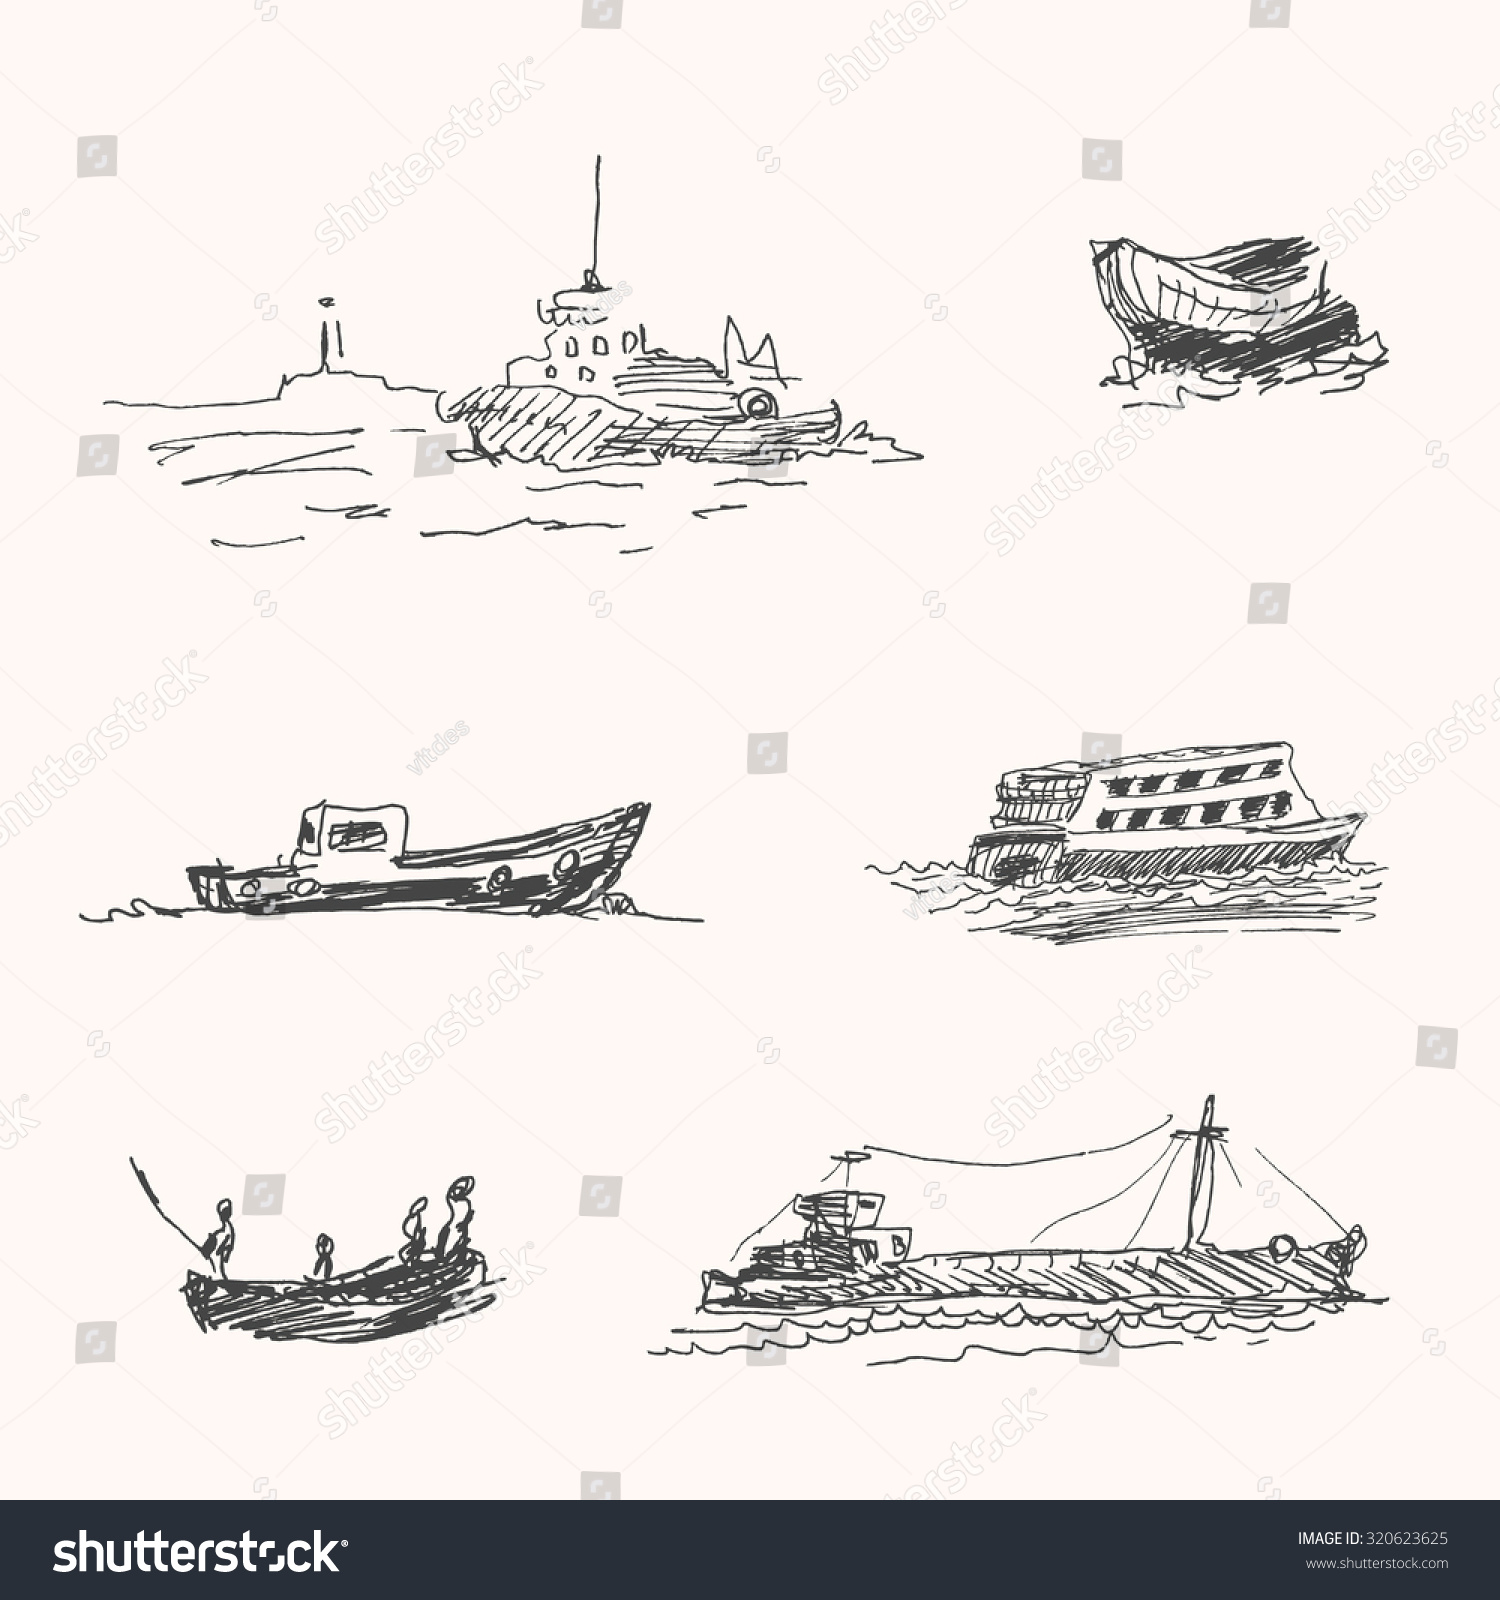 Ocean Ship Or Vessel Marina Drawings Set In Hand Drawn Sketch Style For Freight